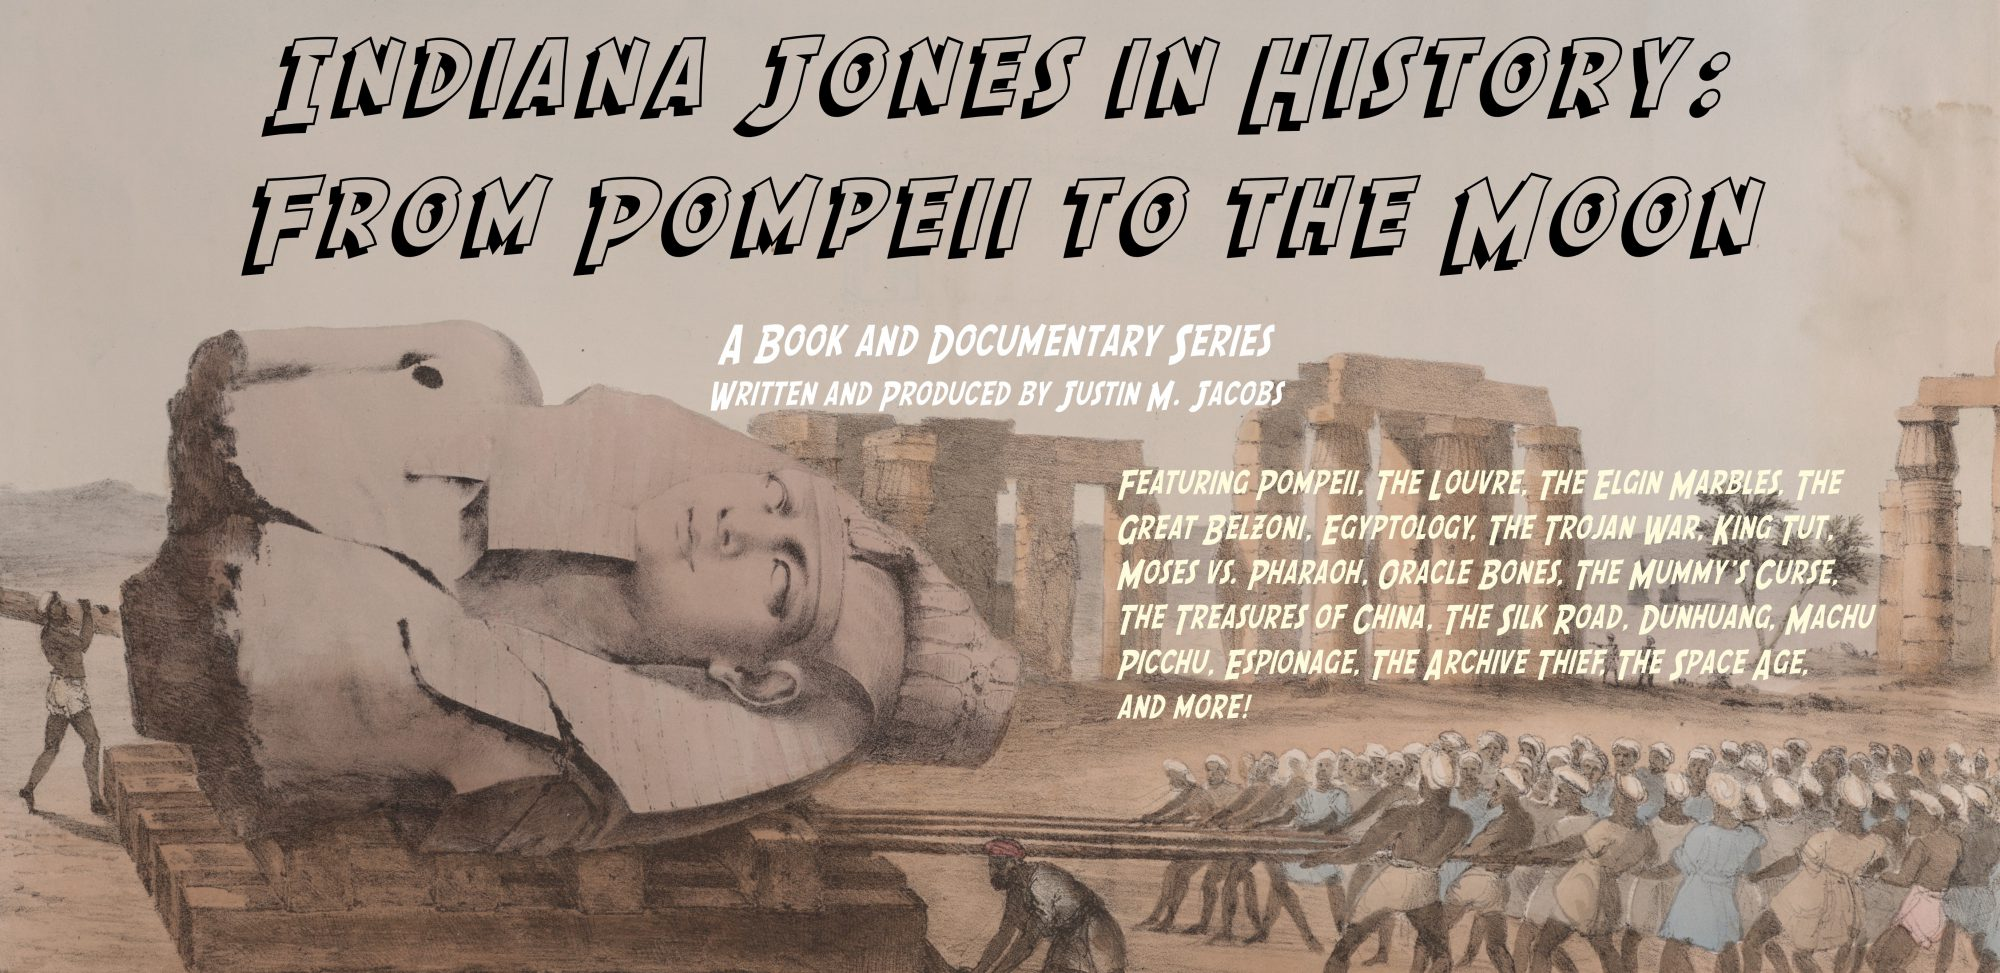 Indiana Jones in History: From Pompeii to the Moon